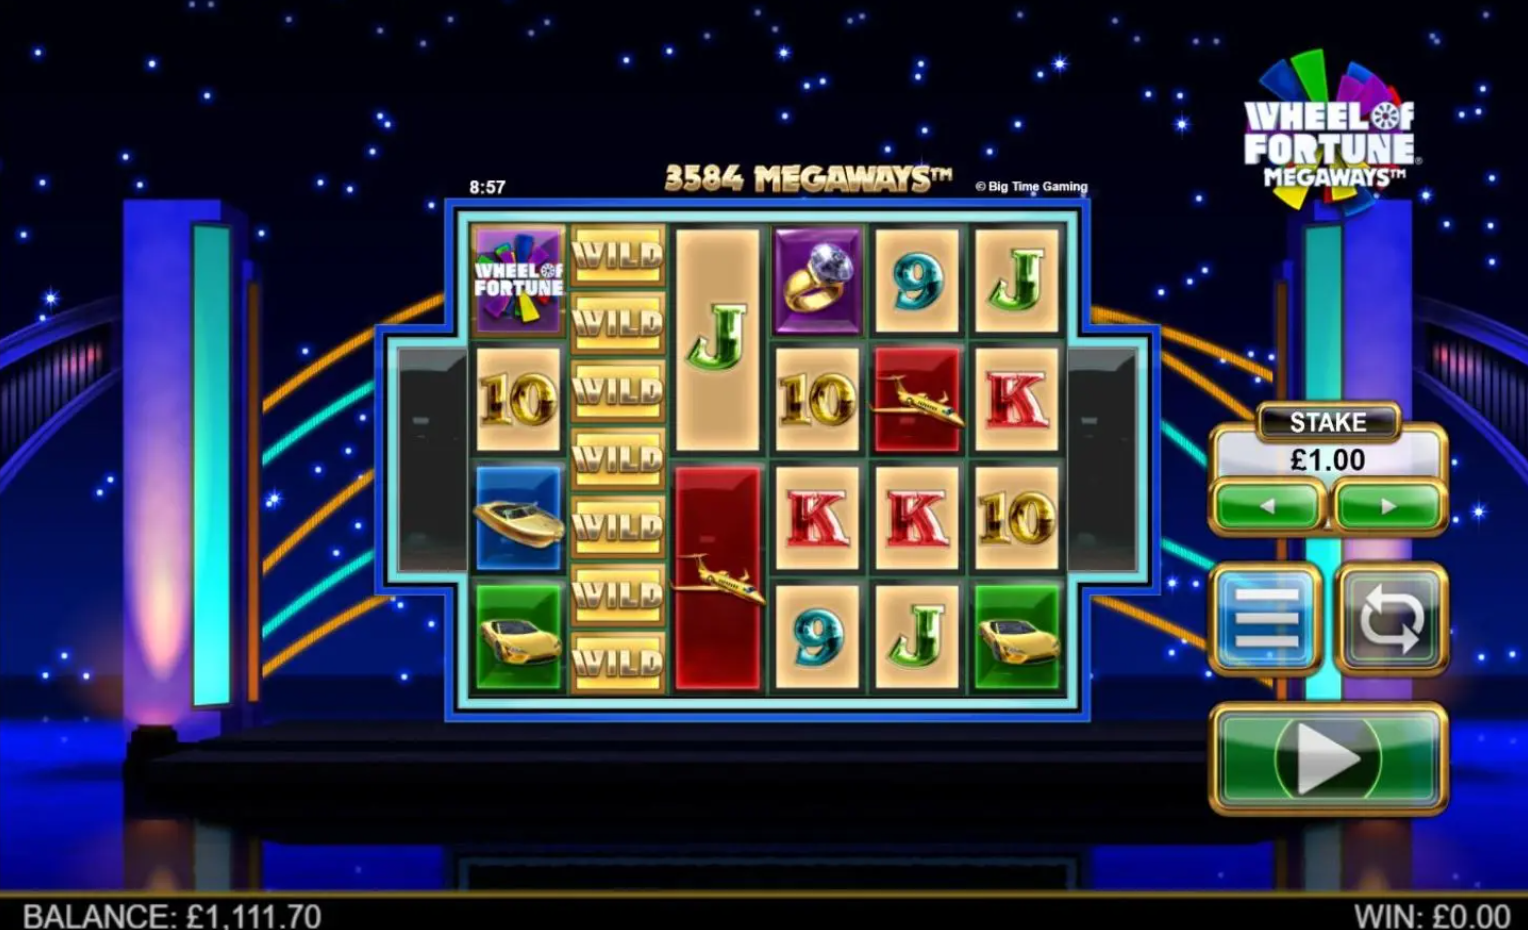 Wheel of Fortune Megaways slots